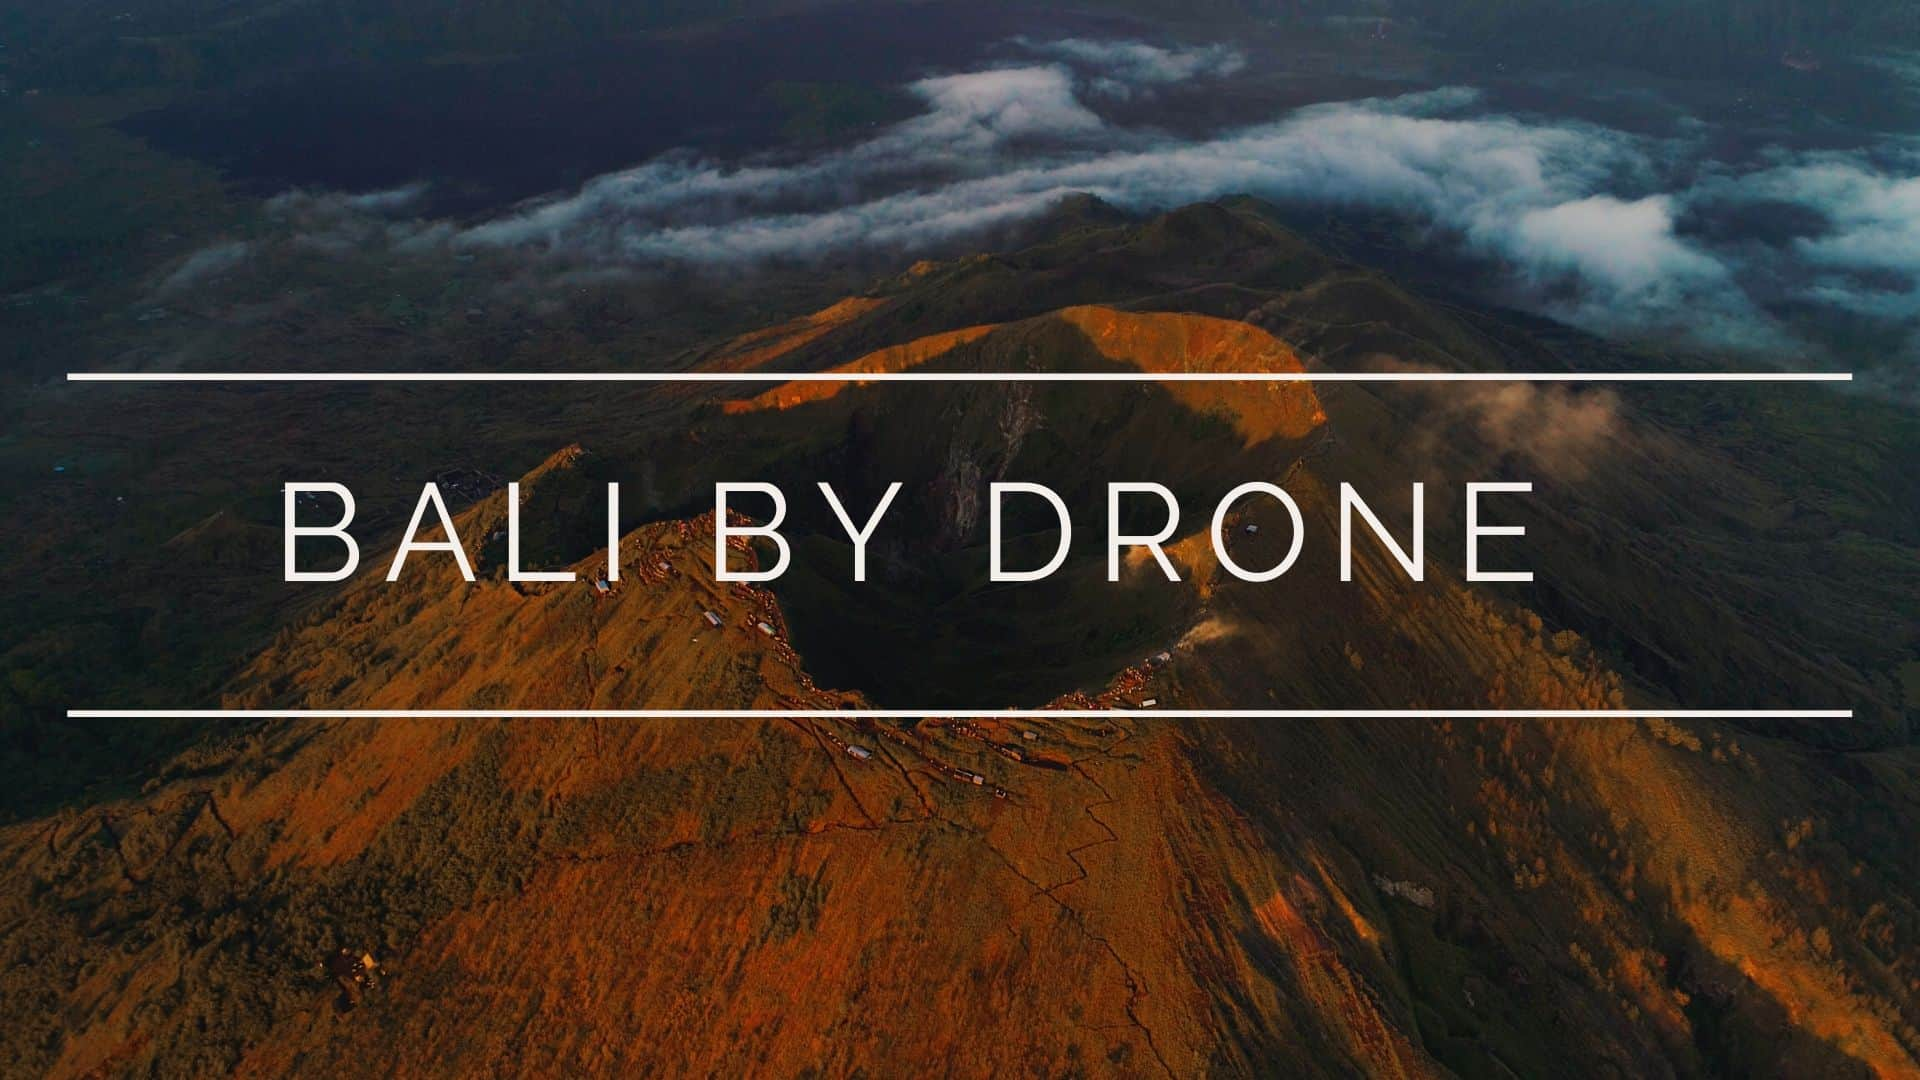 bali-by-drone-short-aerial-film